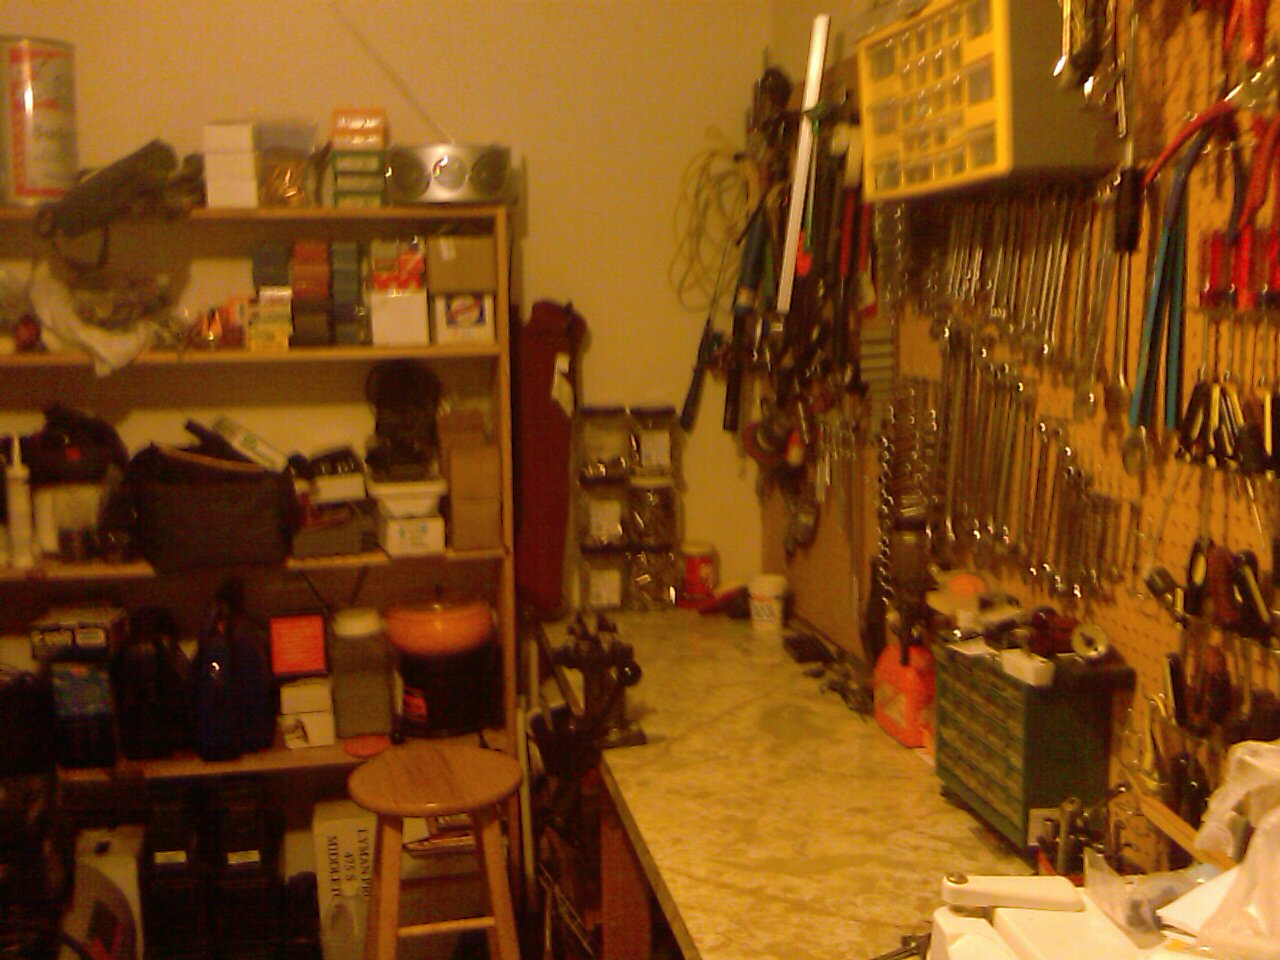 Reloading area and bench-imag0165.jpg